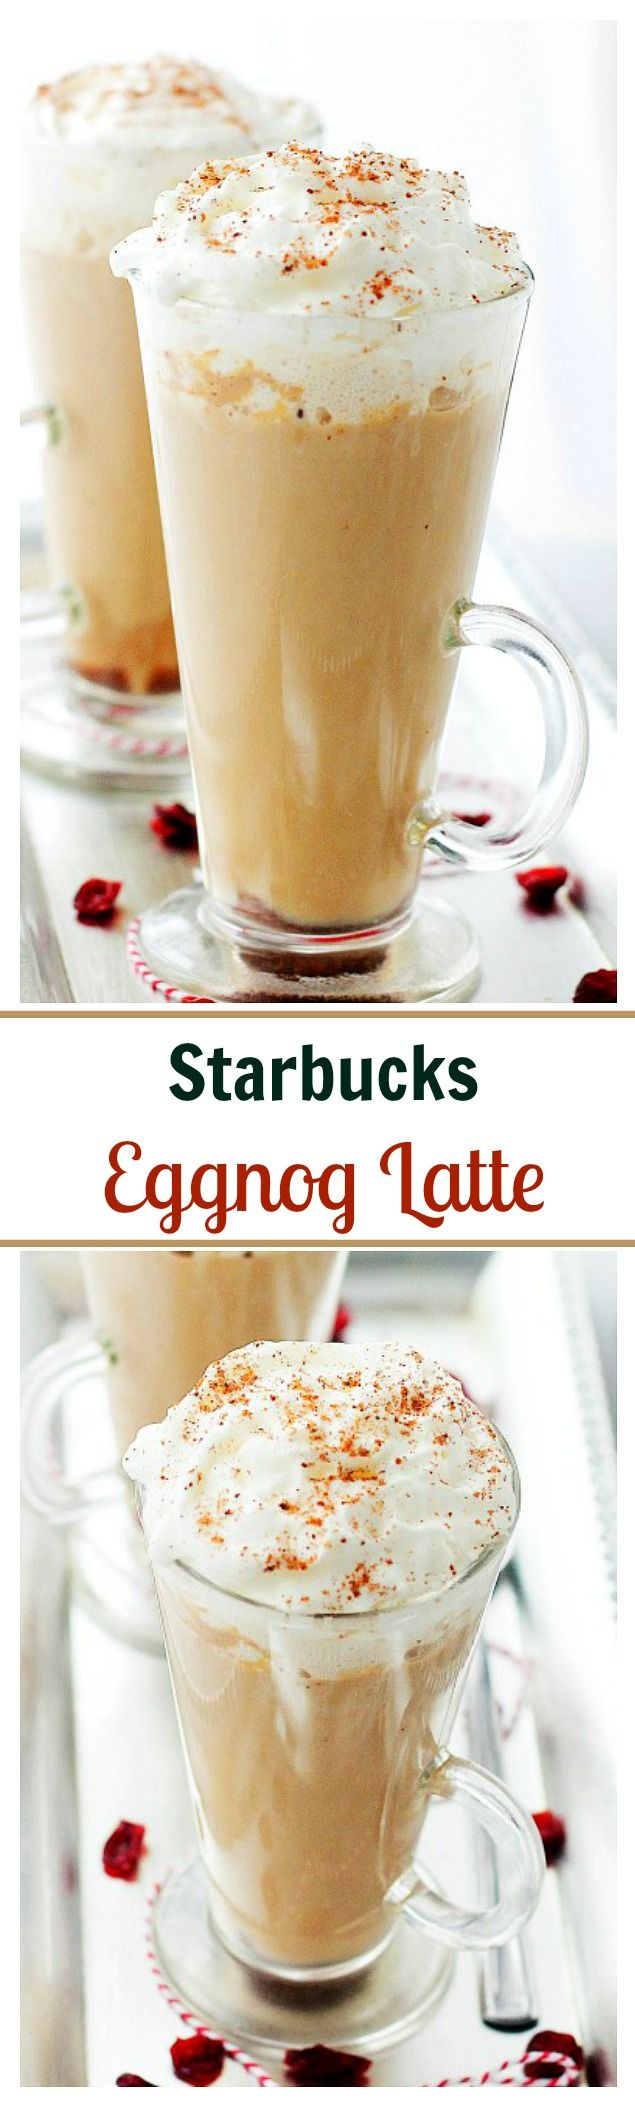 Starbucks Eggnog Latte – This festive, Starbucks-inspired latte is made with strong brewed espresso, steamed eggnog and milk. Brown sugar and nutmeg, too. Save yourself 5$ and make it at home – it's delicious!!